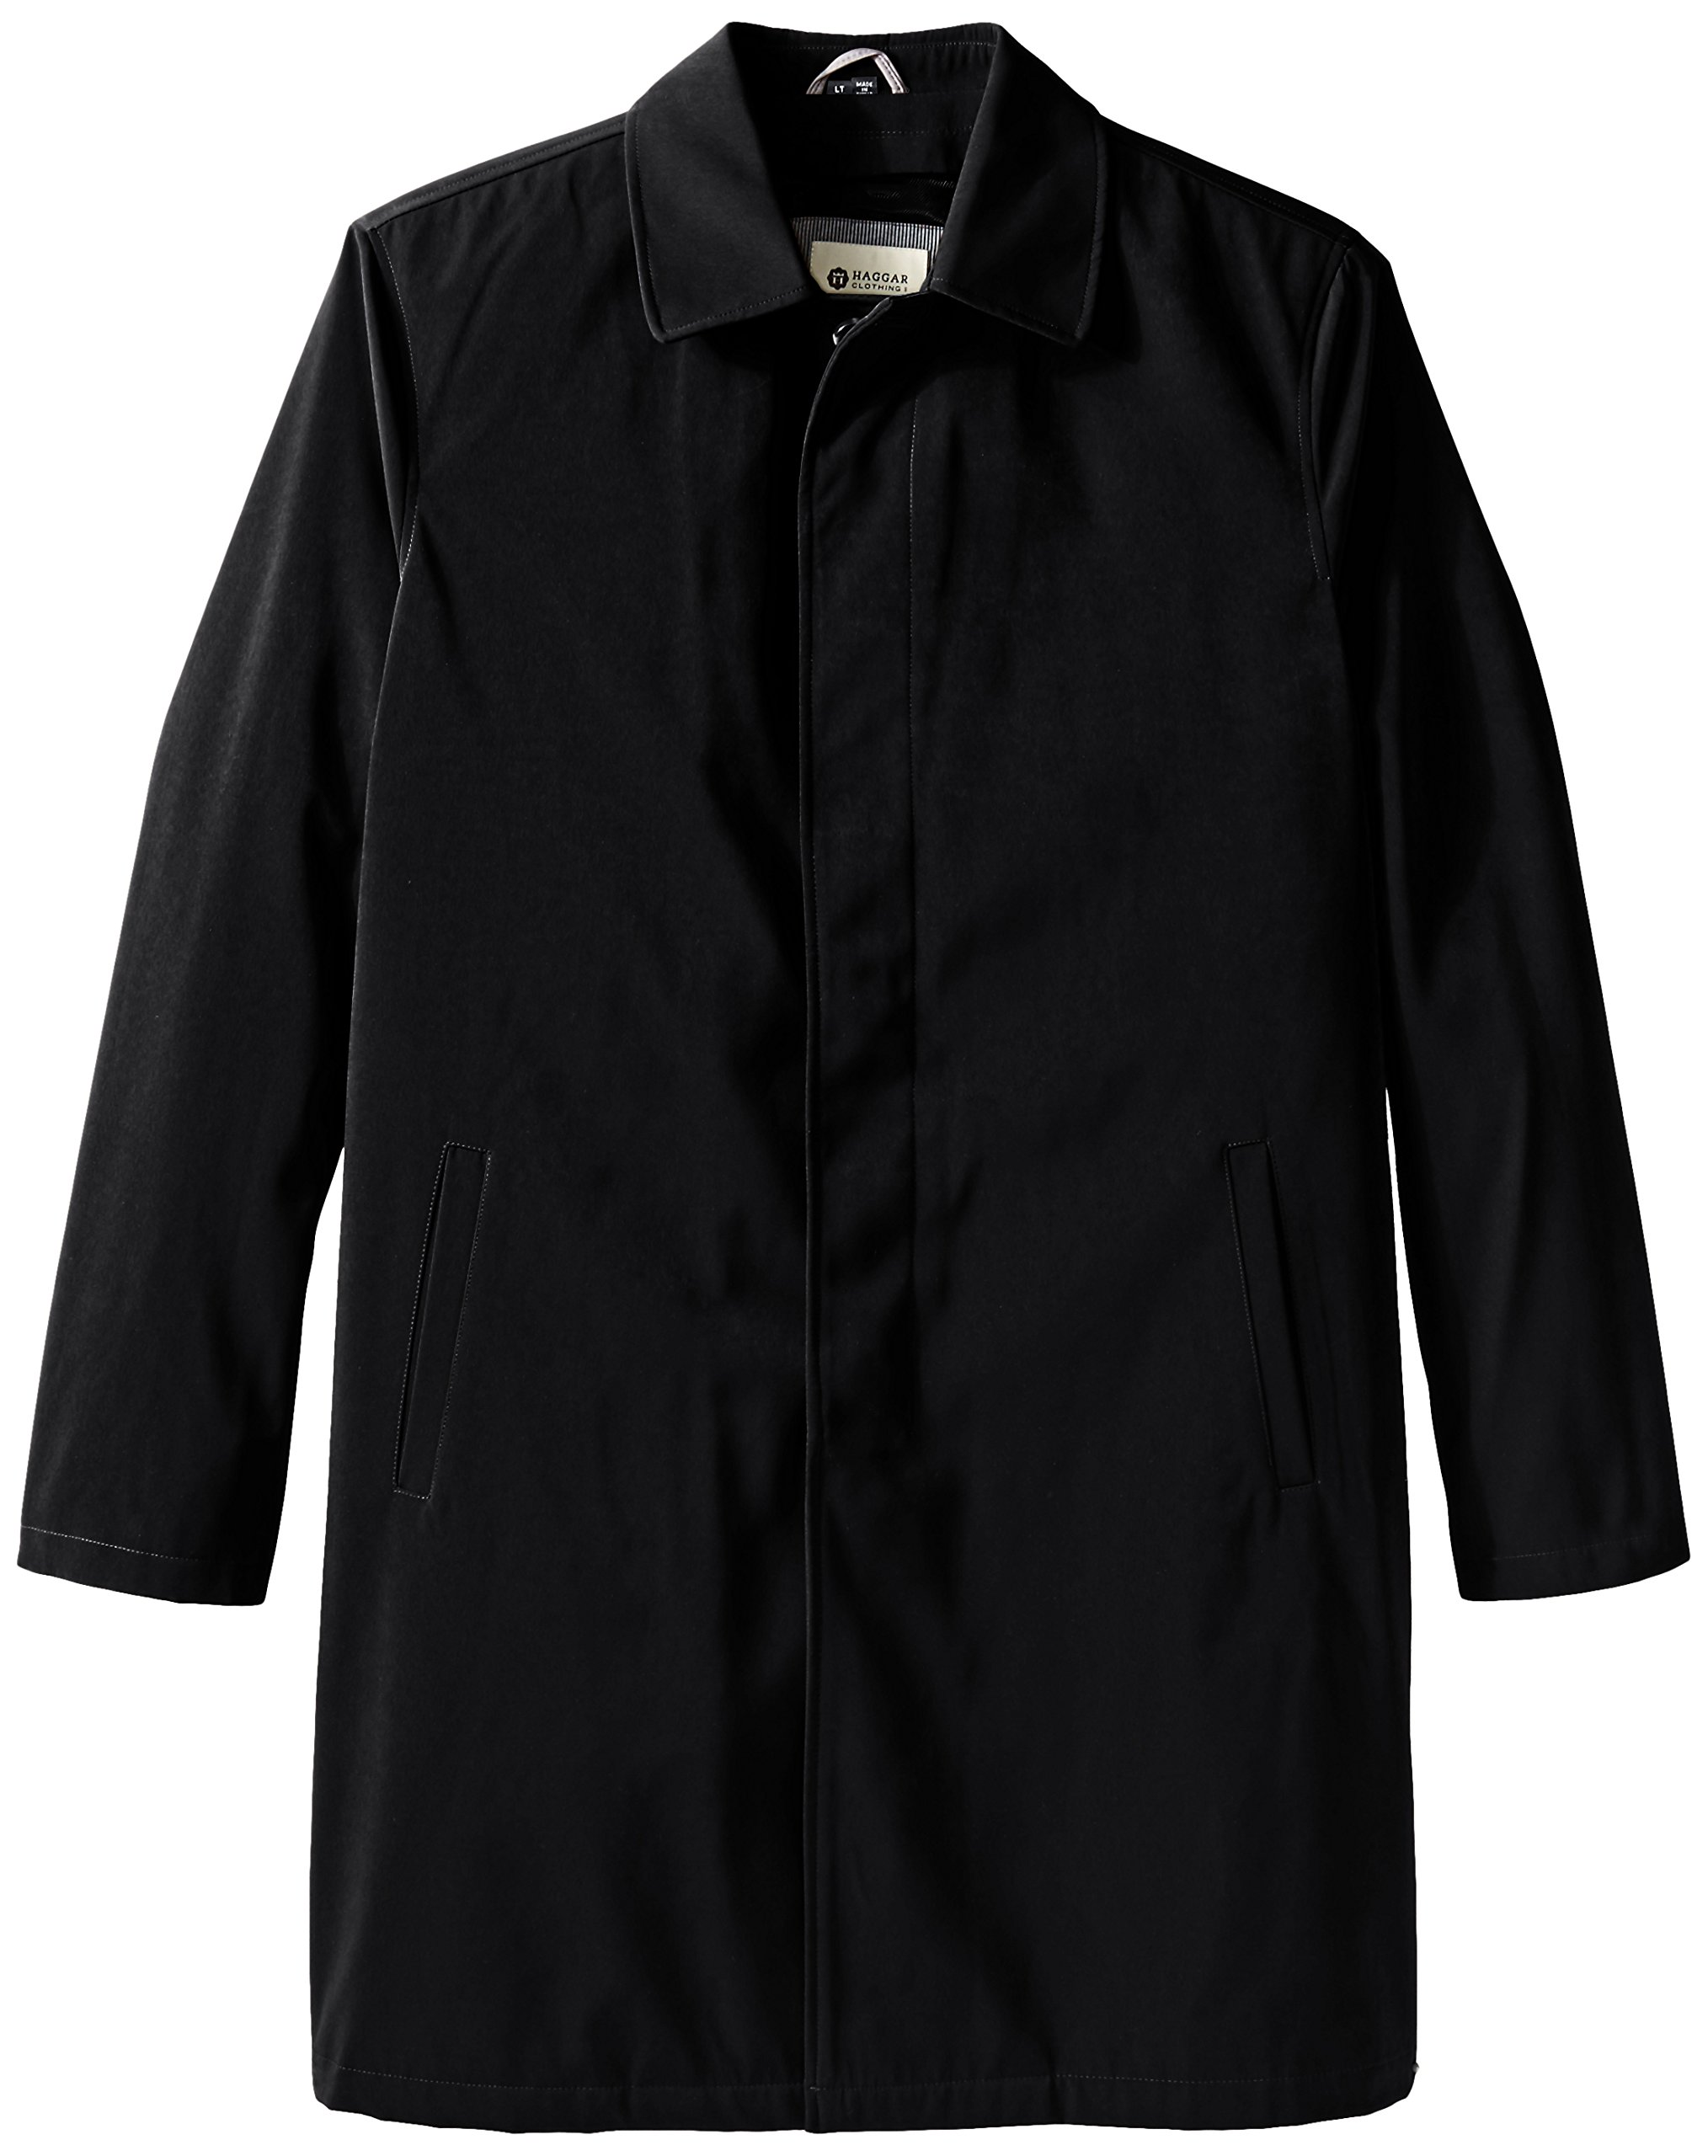 Haggar Men's Big-Tall Kildare Updated Classic Coat with Zip-Out Liner, Black, X-Large/Tall